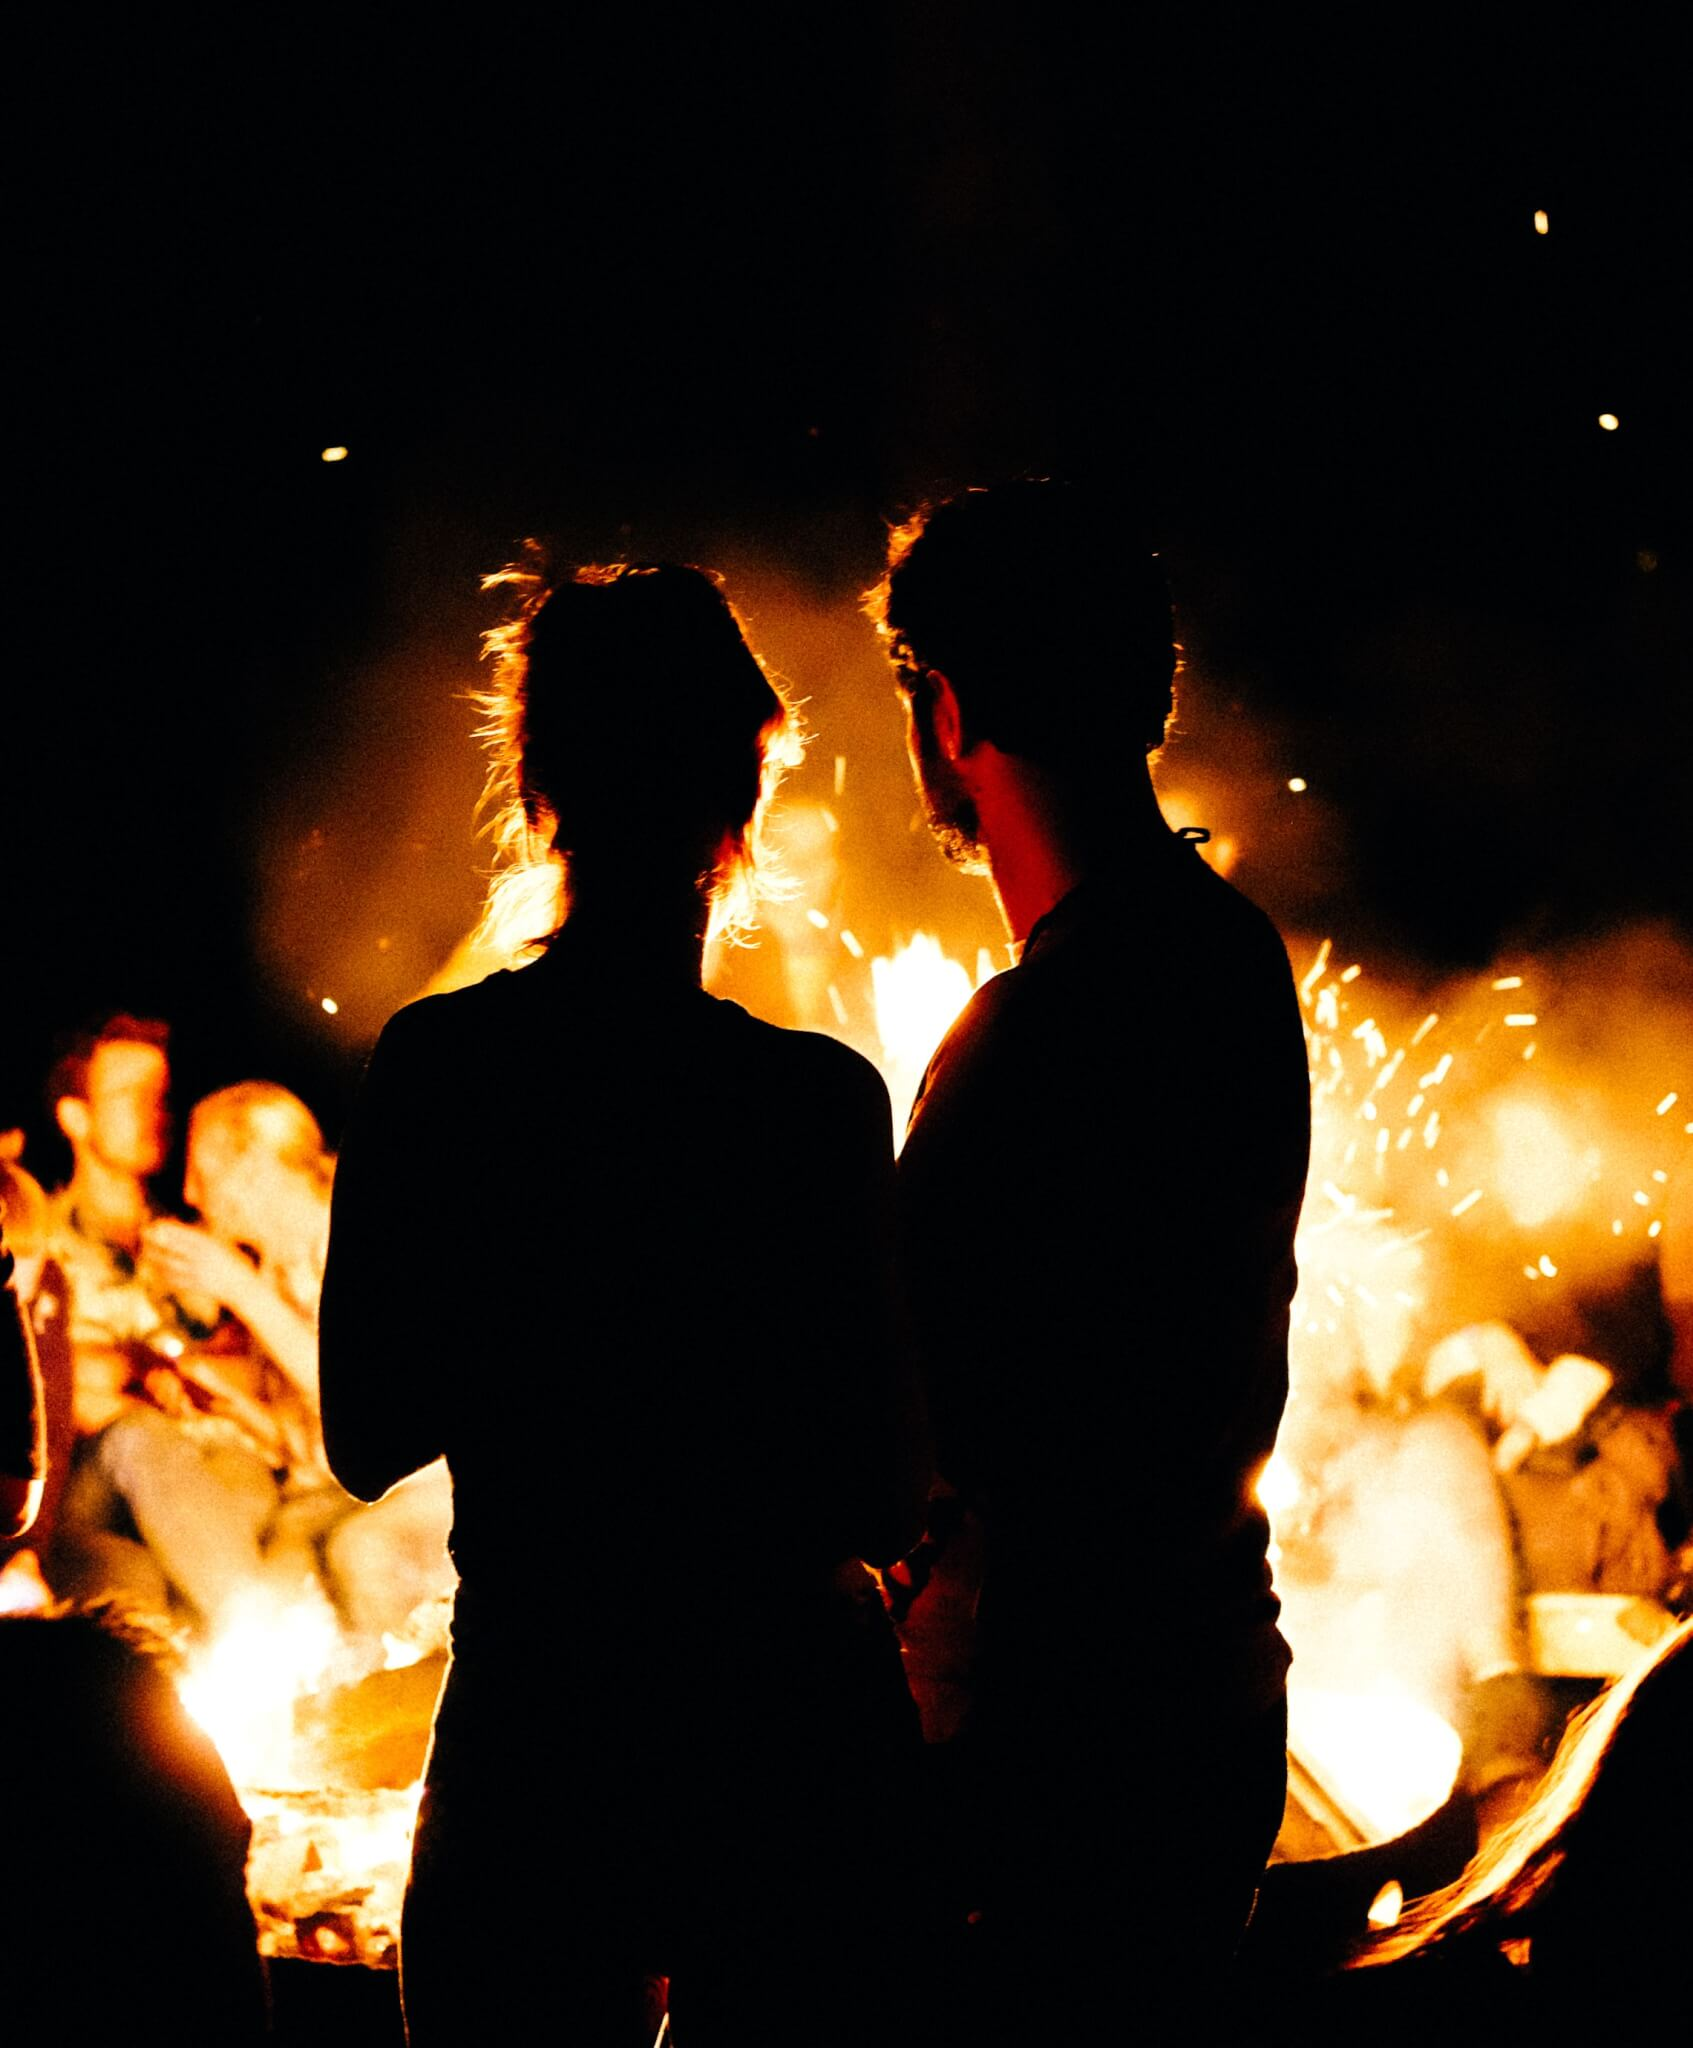 Bonfires are one of the great fall date ideas